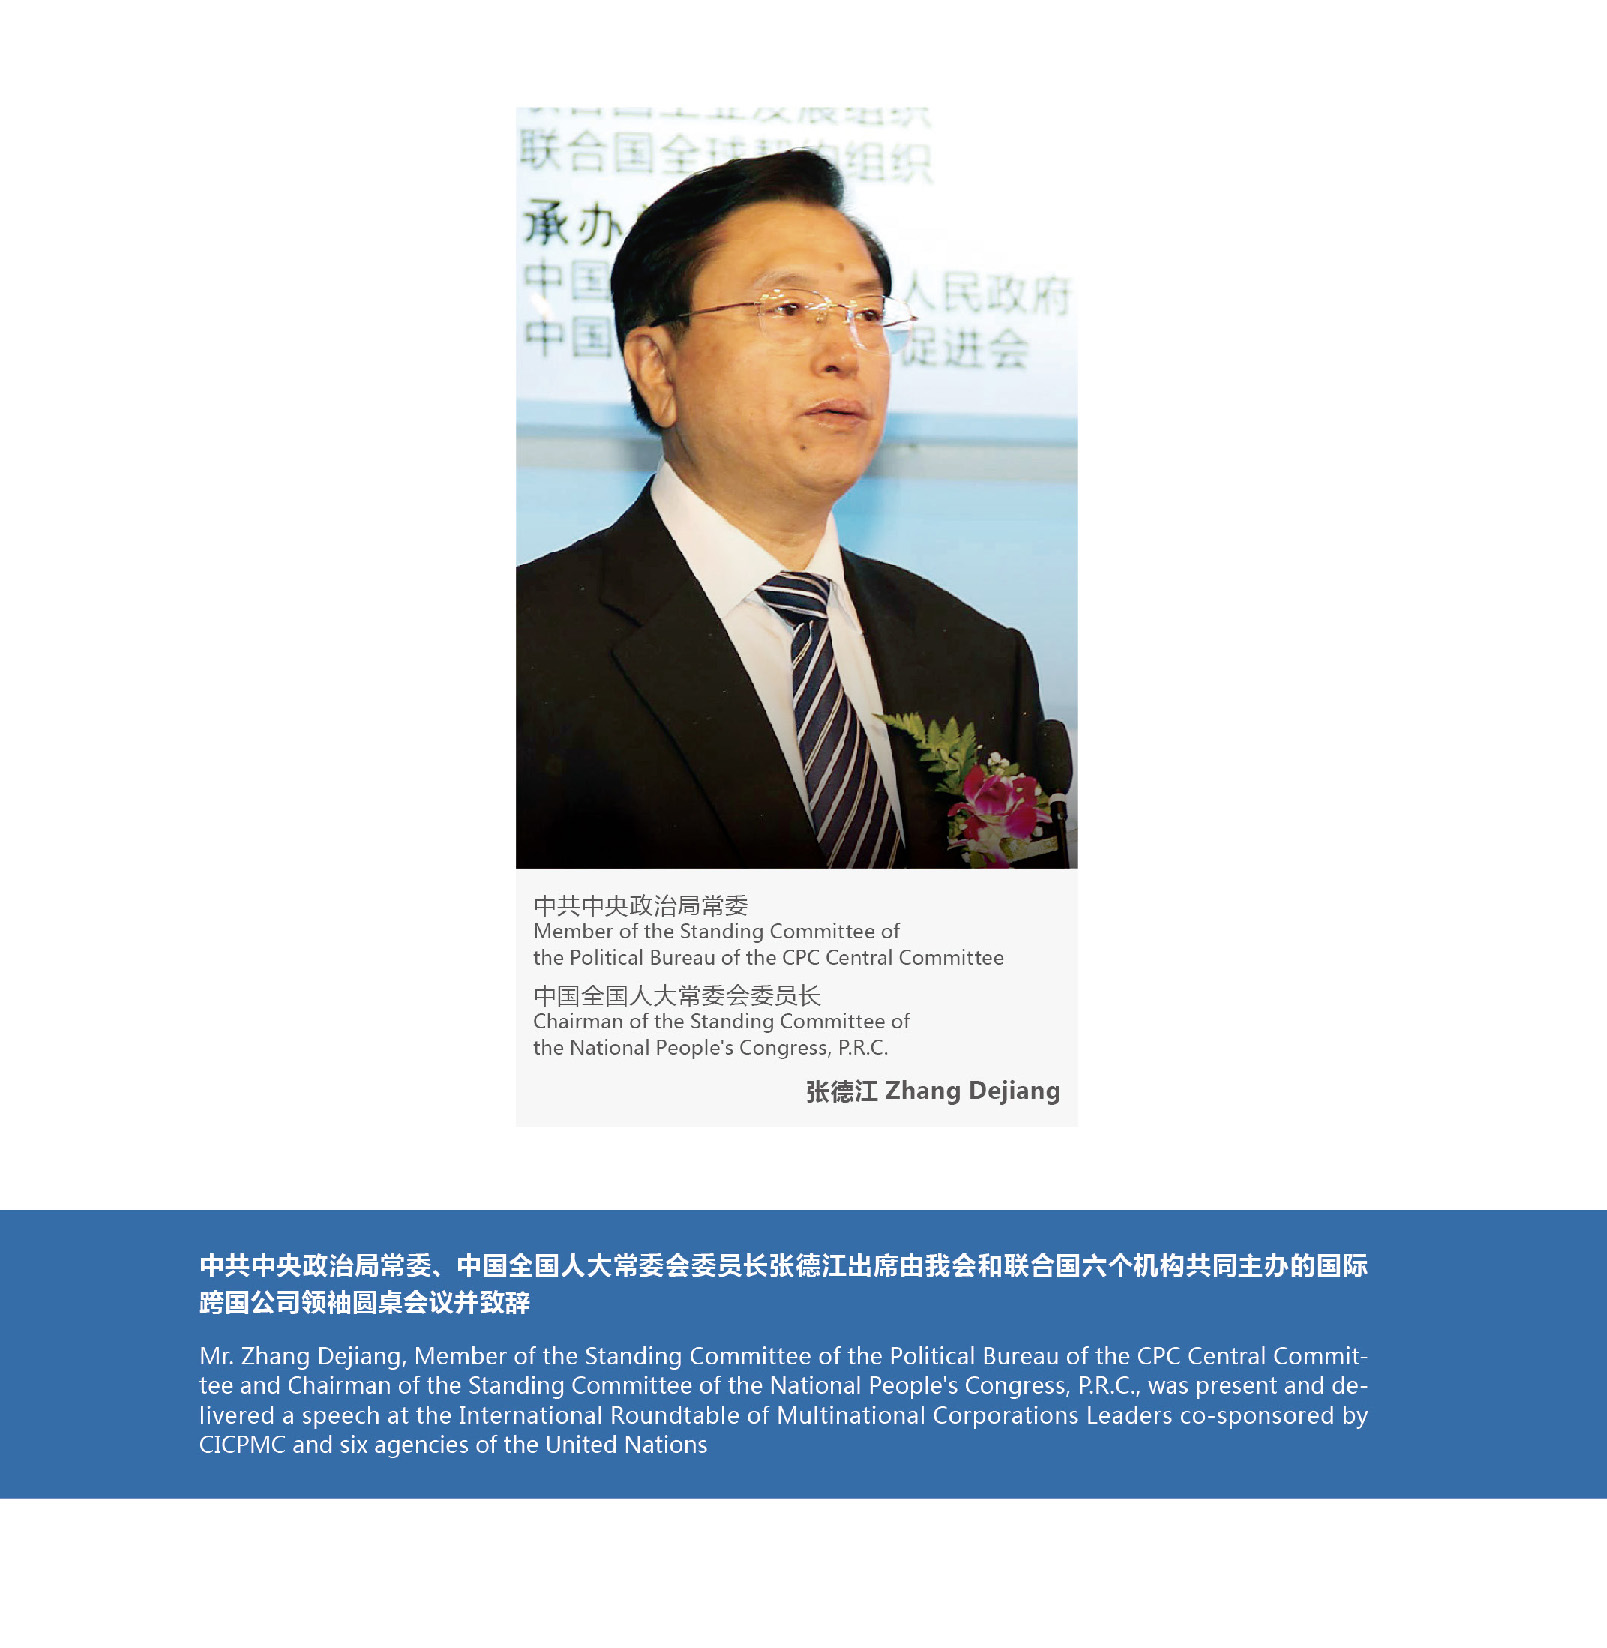 Mr. Zhang Dejiang, Member of the Standing Committee of the Political Bureau of the CPC Central Committee and Chairman of the Standing Committee of the National People's Congress, P.R.C., was present and delivered a speech at the International Roundtable of Multinational Corporations Leaders co-spons